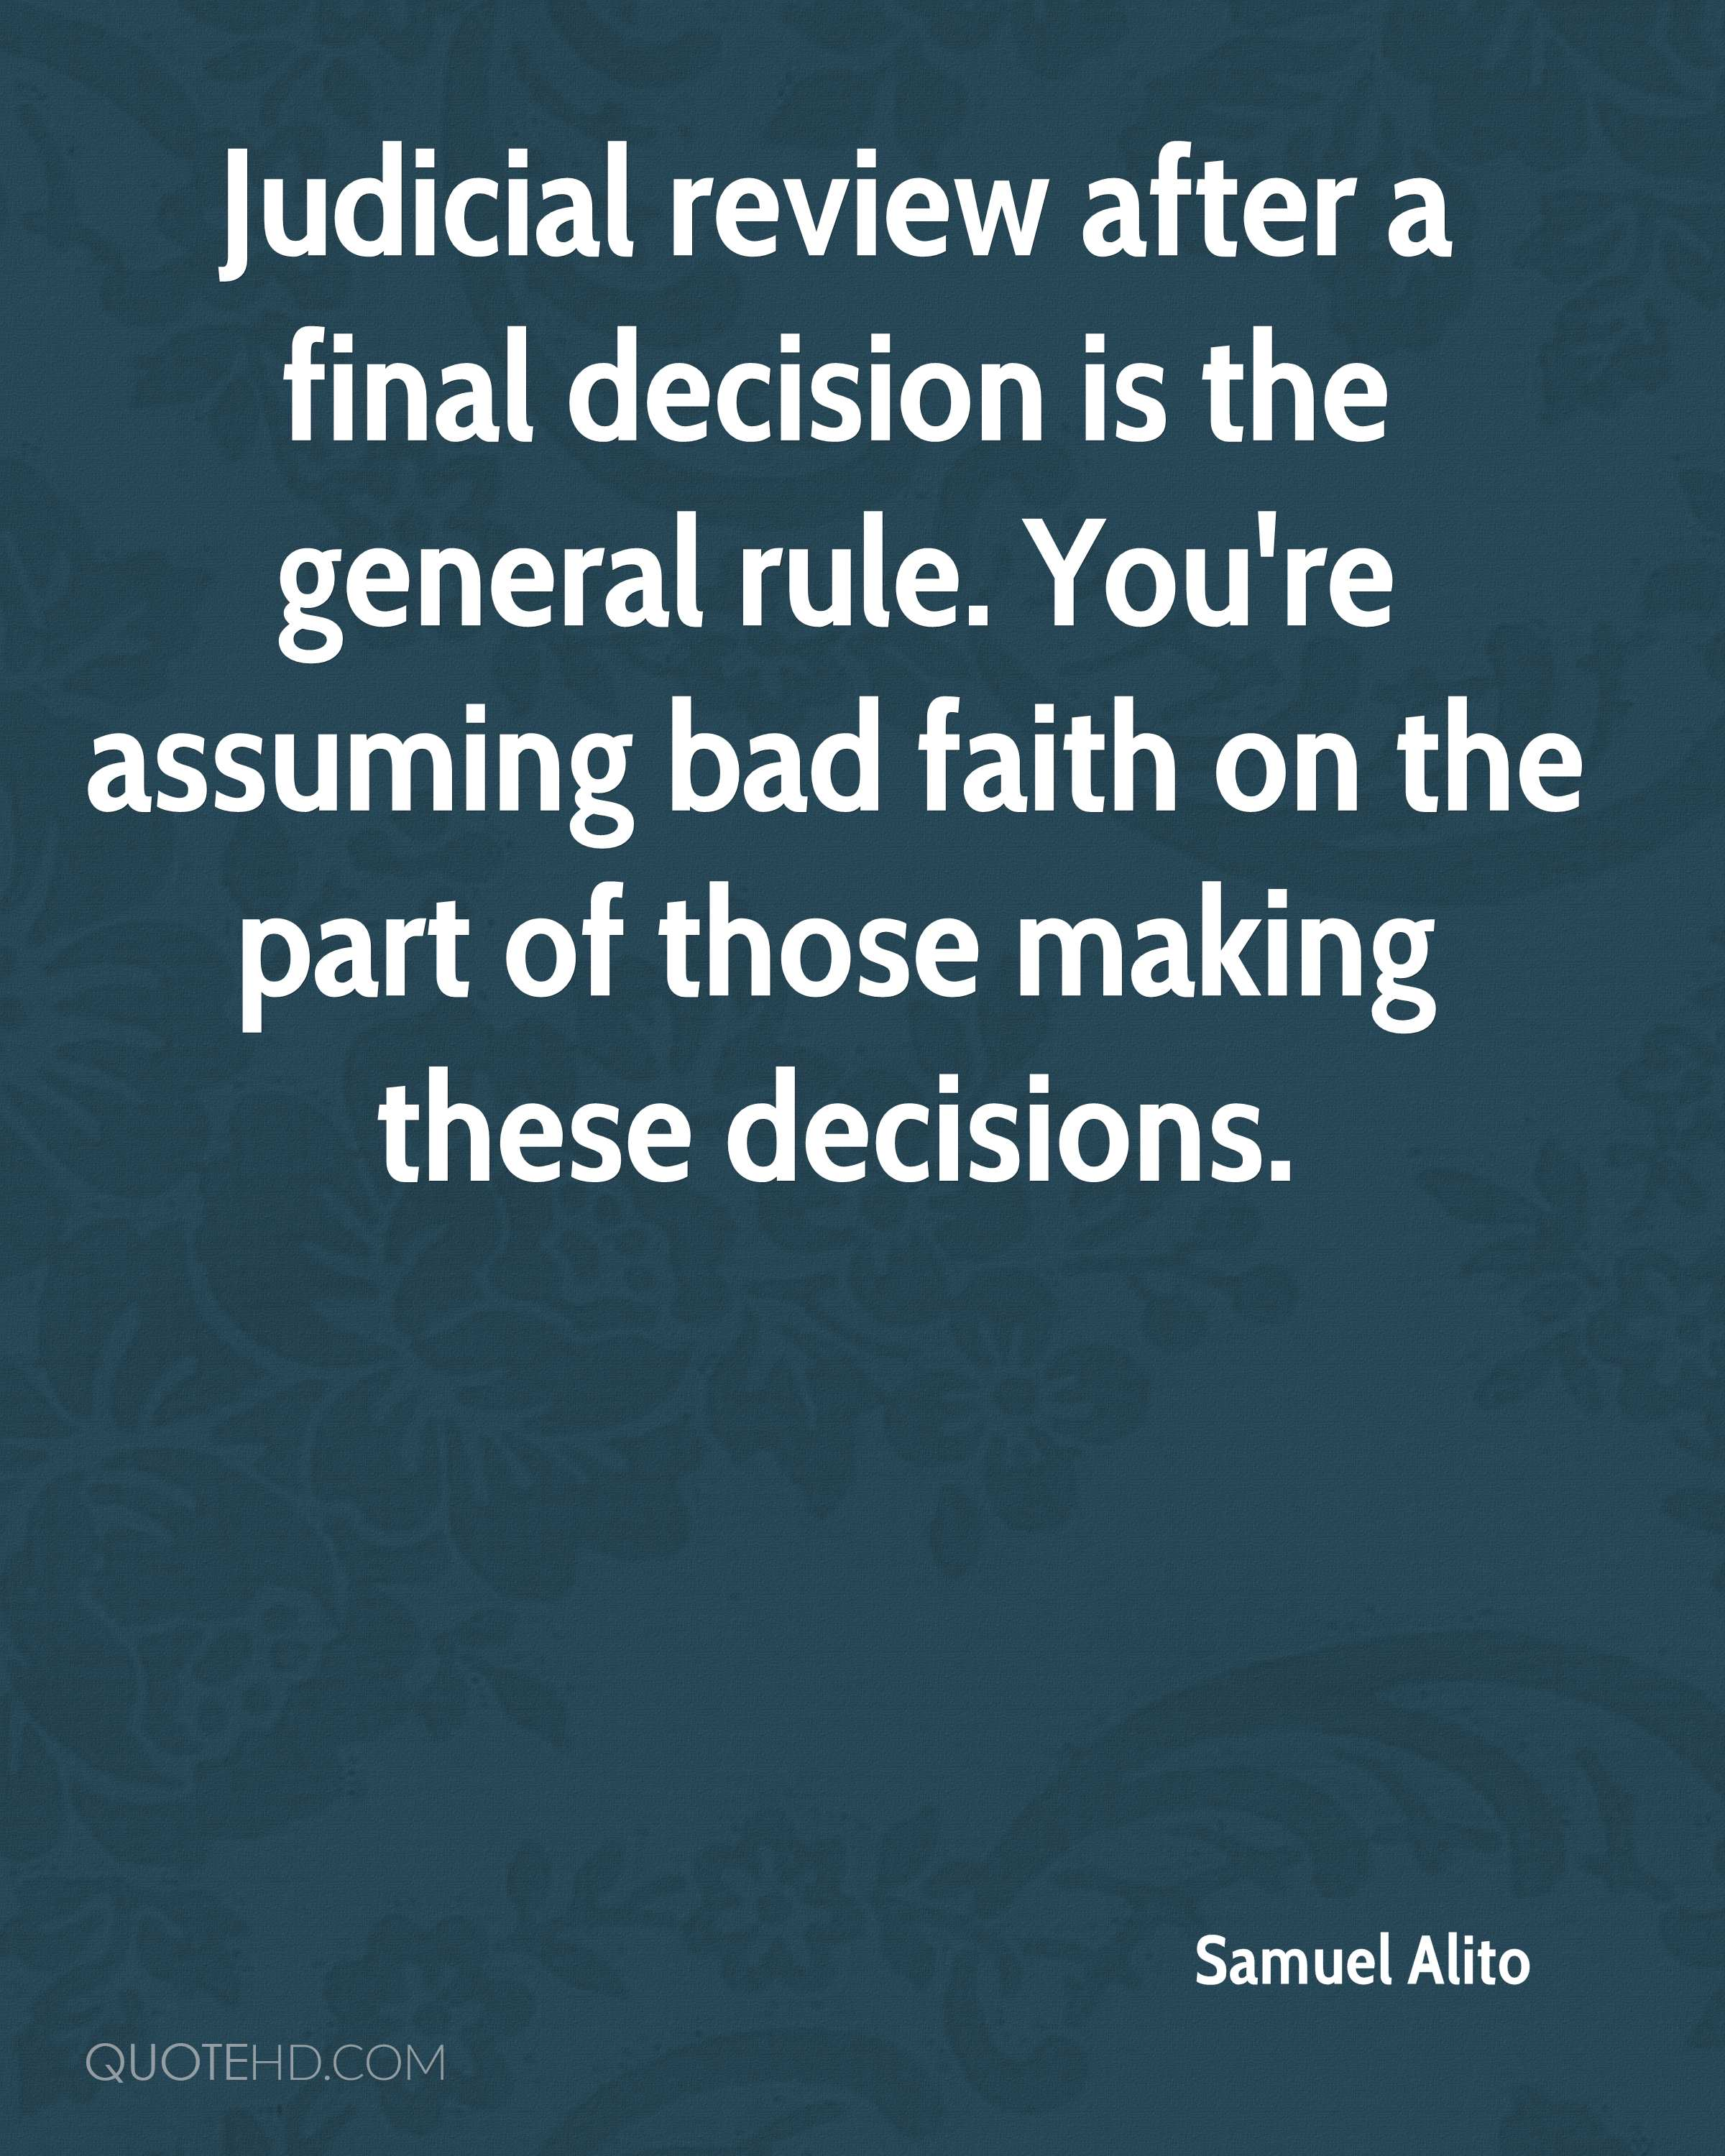 Judicial review after a final decision is the general rule. You're assuming bad faith on the part of those making these decisions.